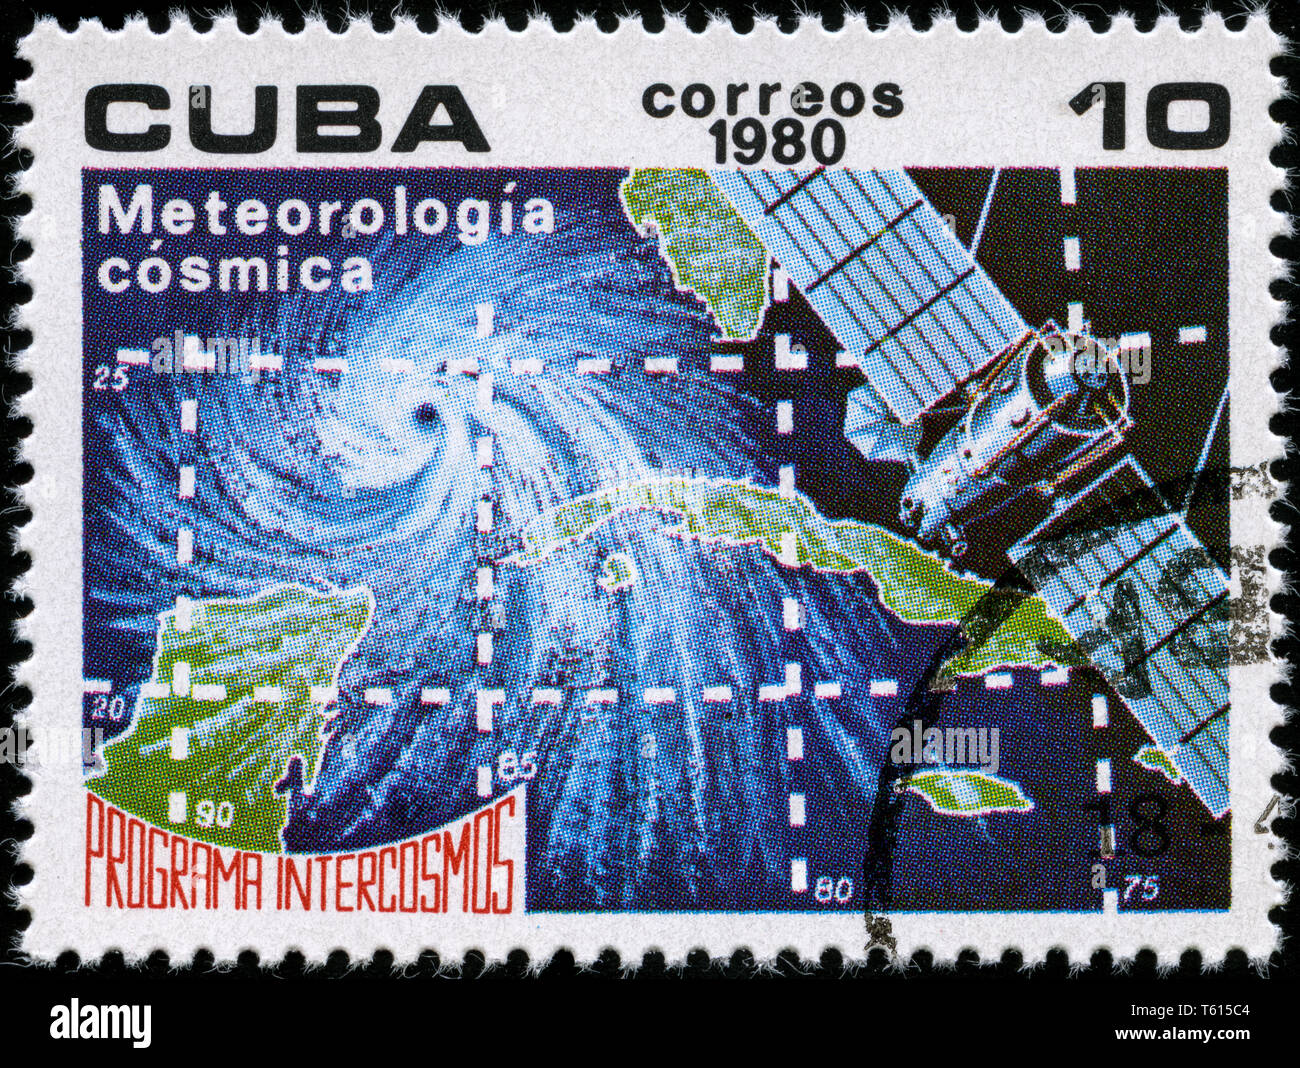 Postage stamp from Cuba in the Intercosmos Program series issued in 1980 - Stock Image